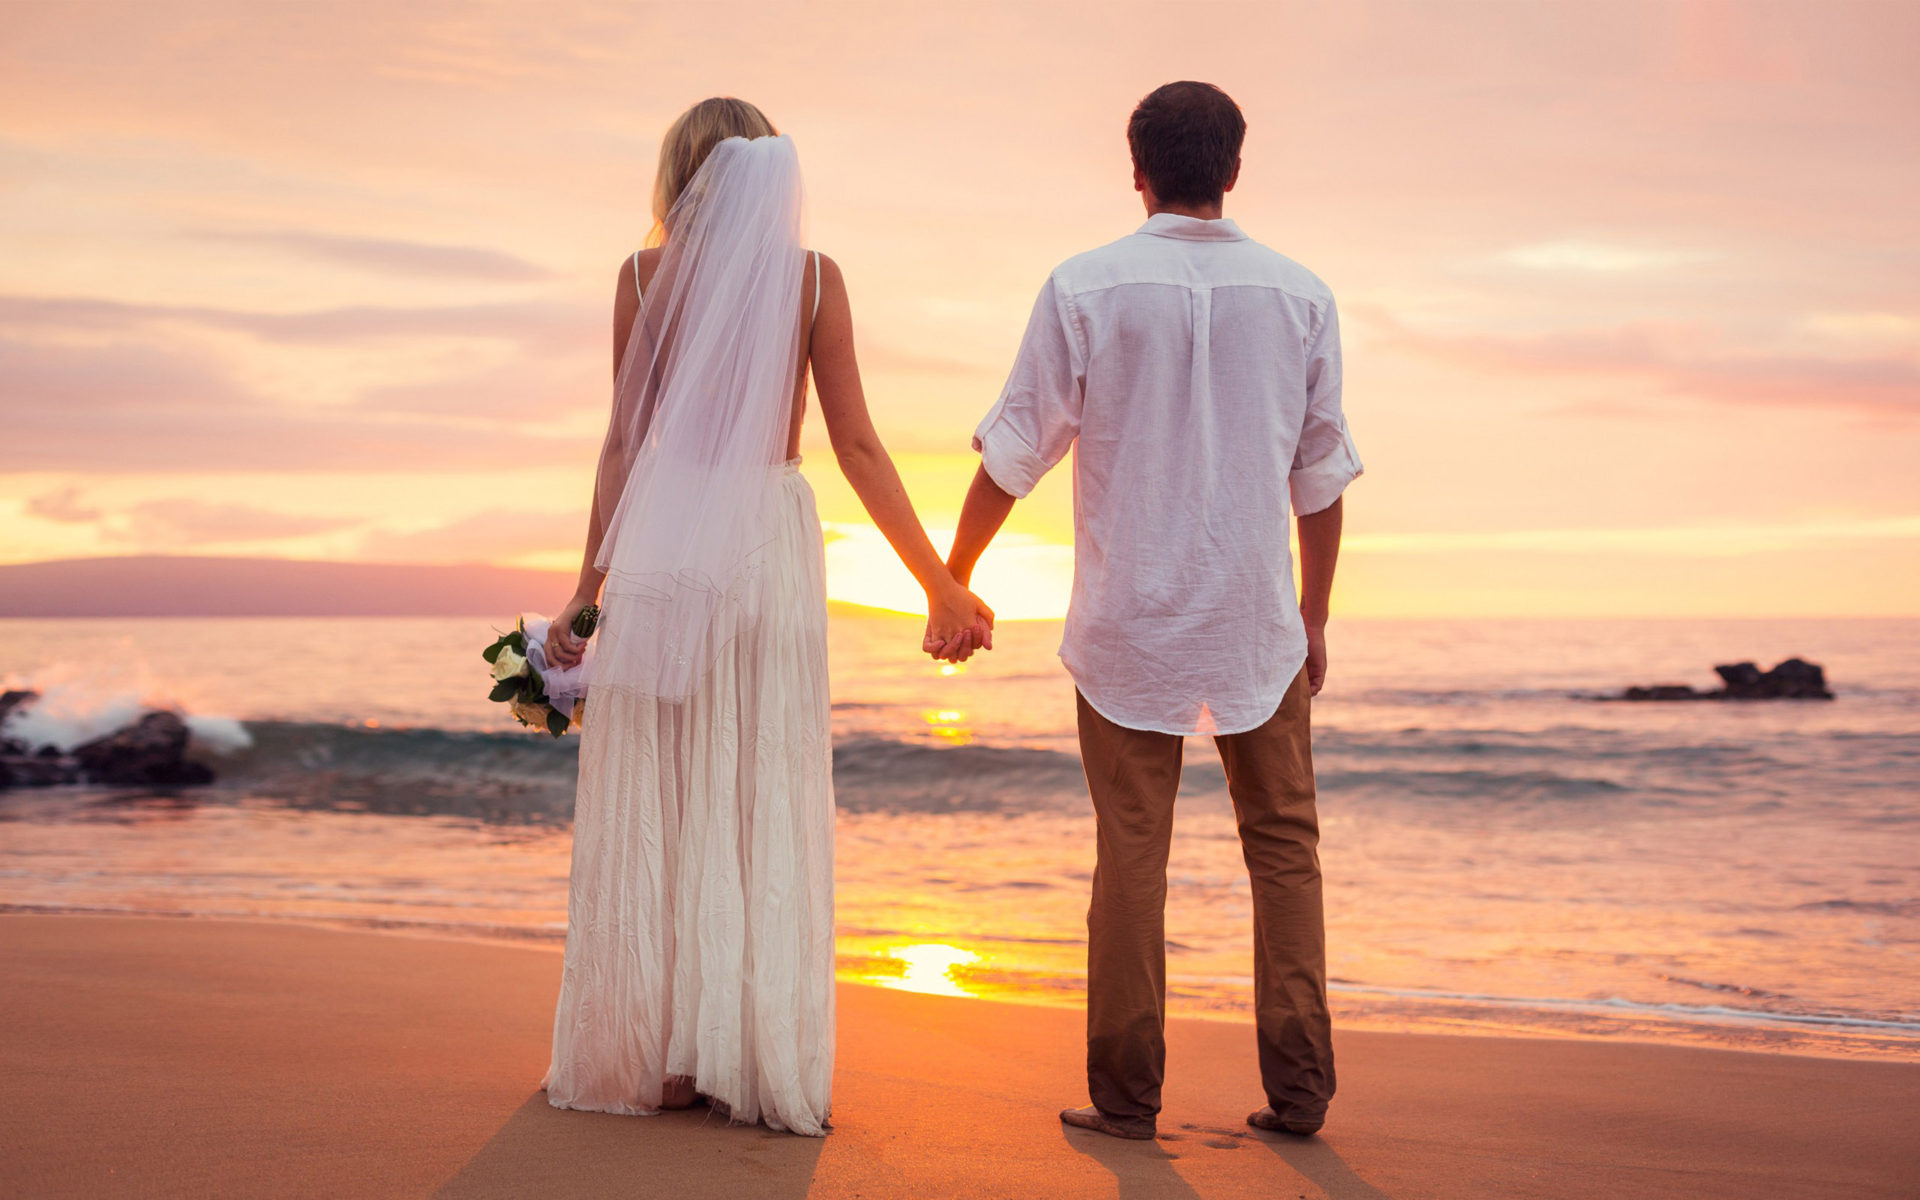 Cute Couple Holding Hands Wallpapers Love Couple Had Just Married Sea Beach Sunset Hd Love